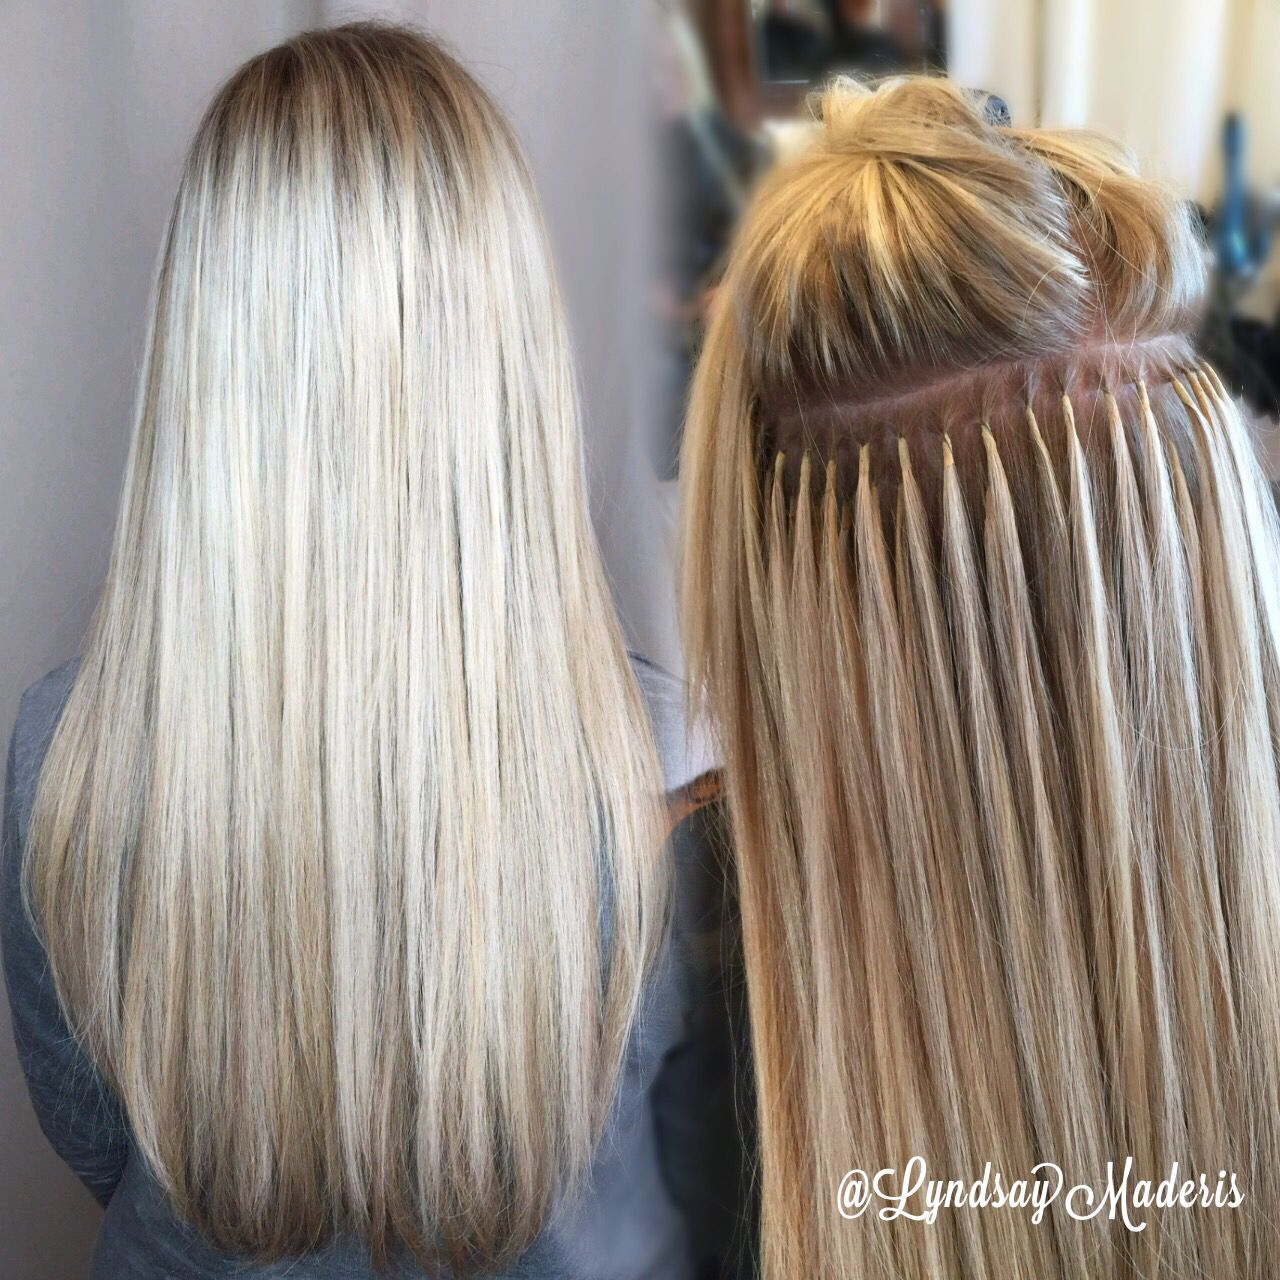 Custom Keratin Bonds Using Greatlengthsusa Blonde Hair Extensions